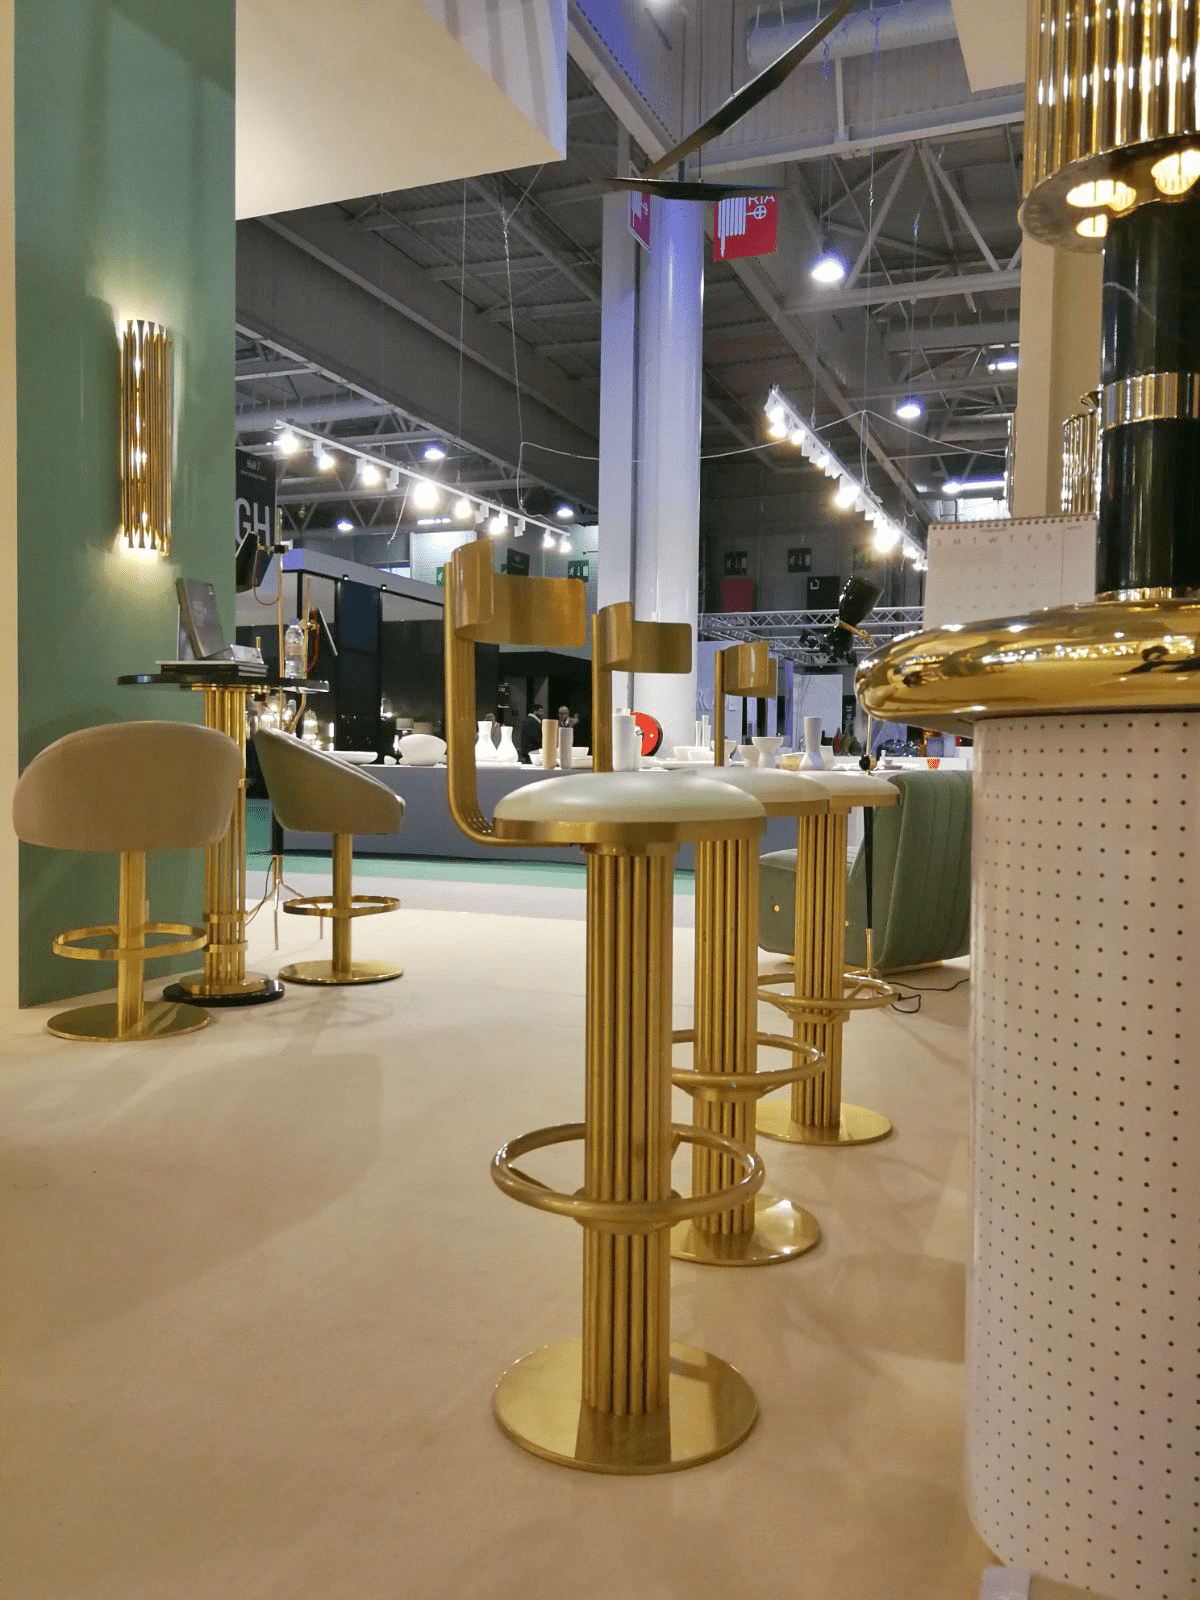 Salon Maison Et Objet What You Probably Didn T Know About Maison Et Objet 2018 Bar